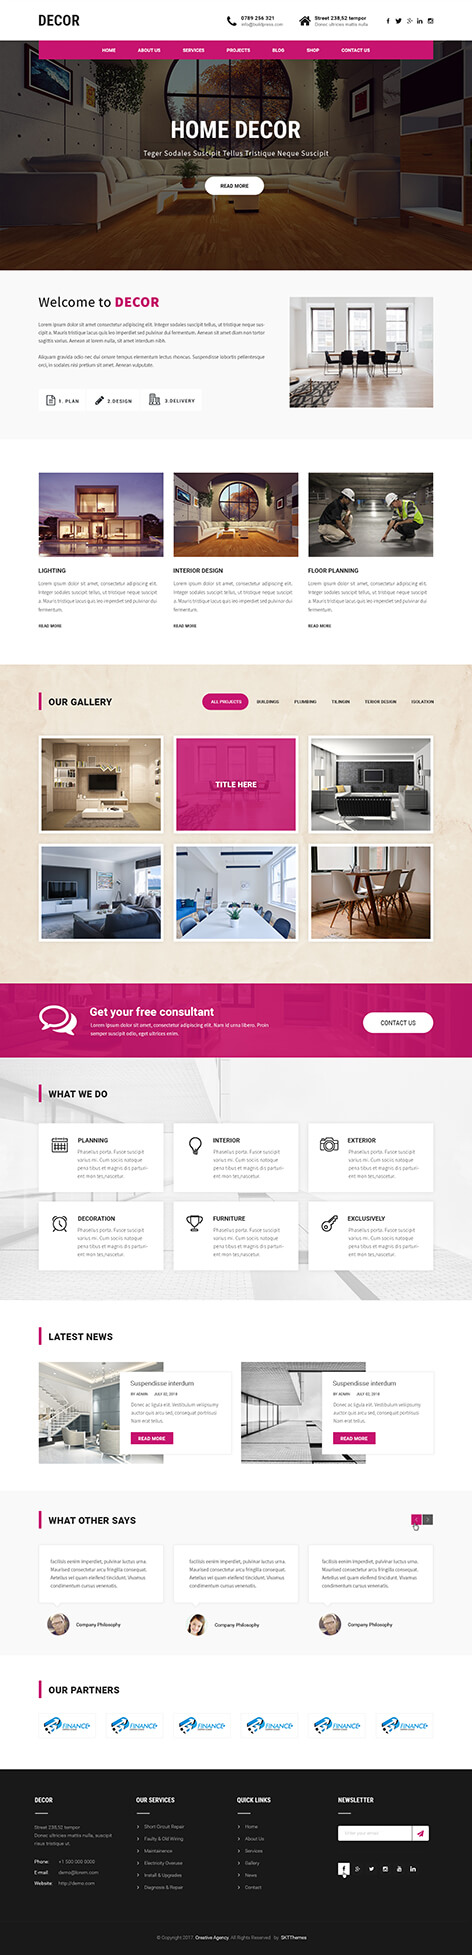 decor WordPress theme